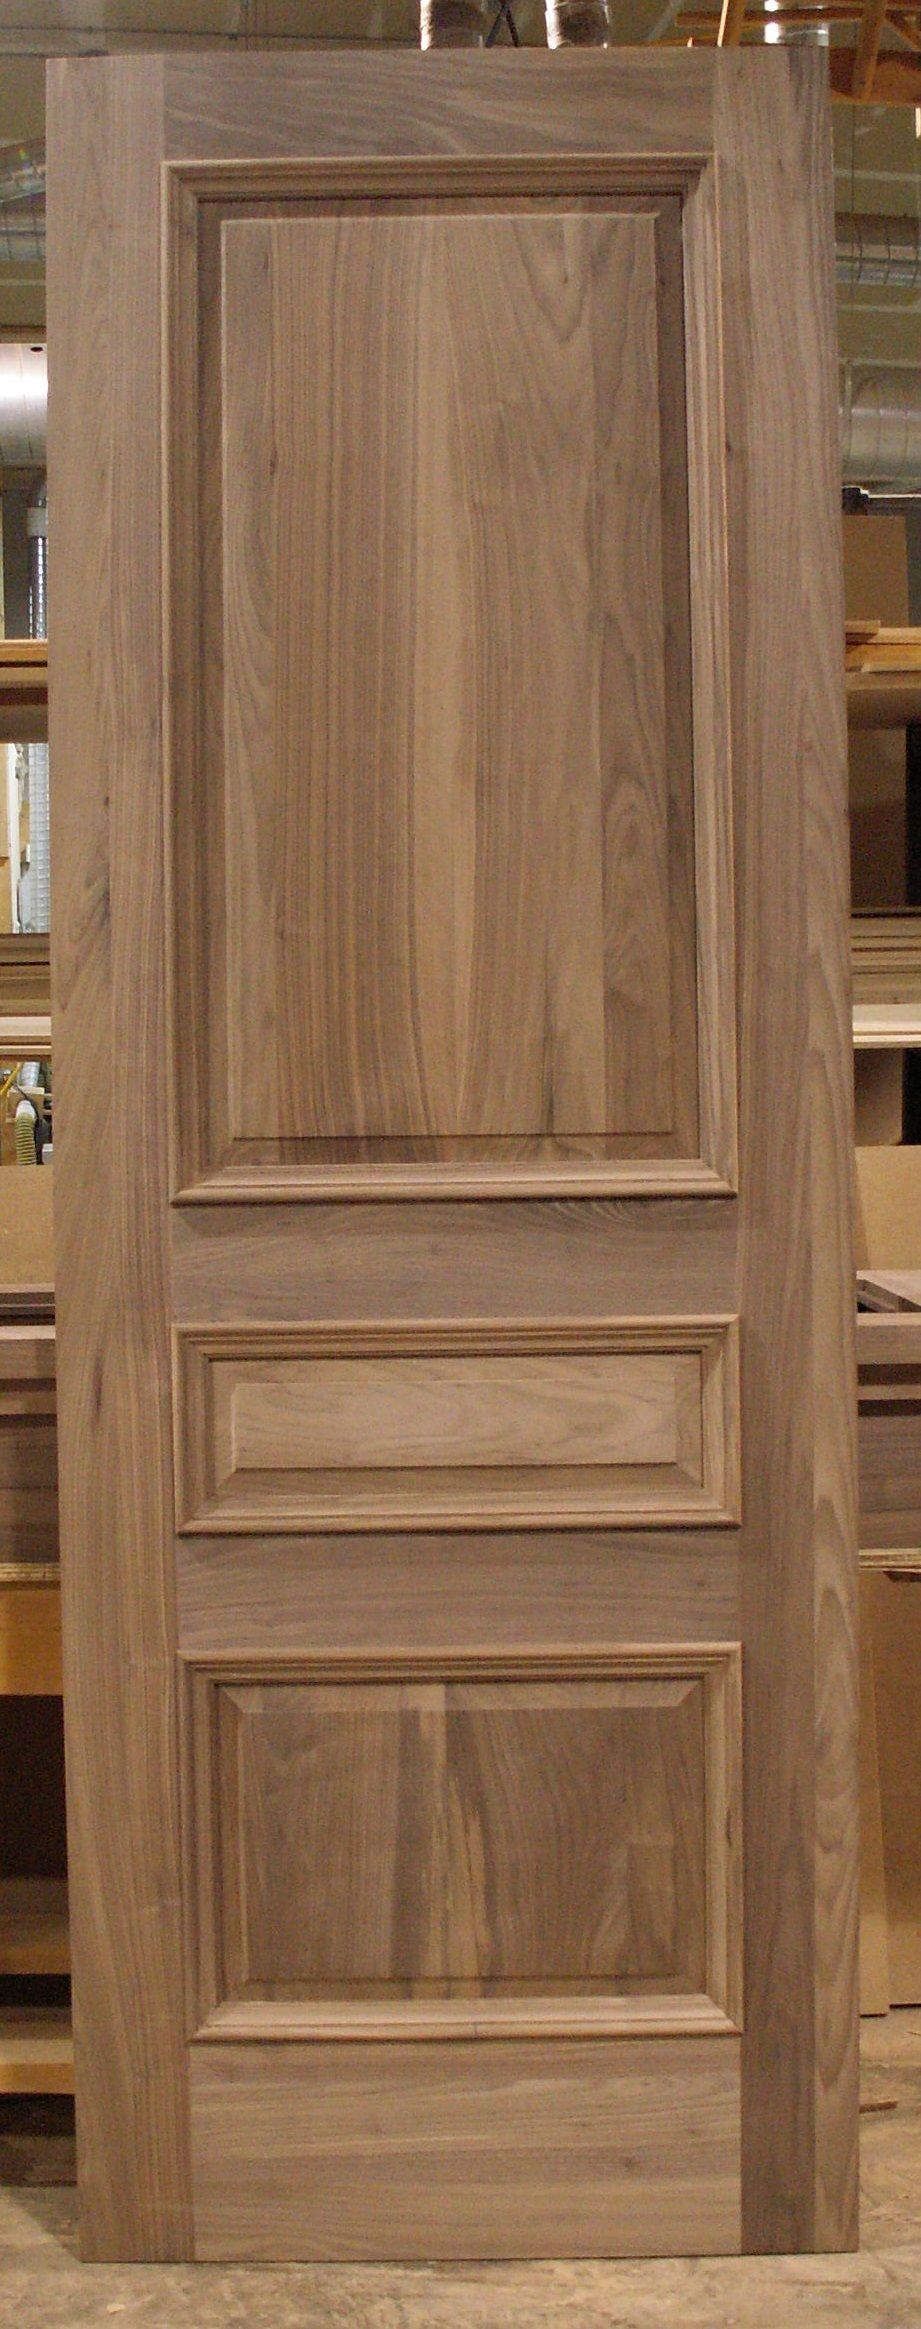 solid walnut door, 3 panel with raised panels and applied moulding